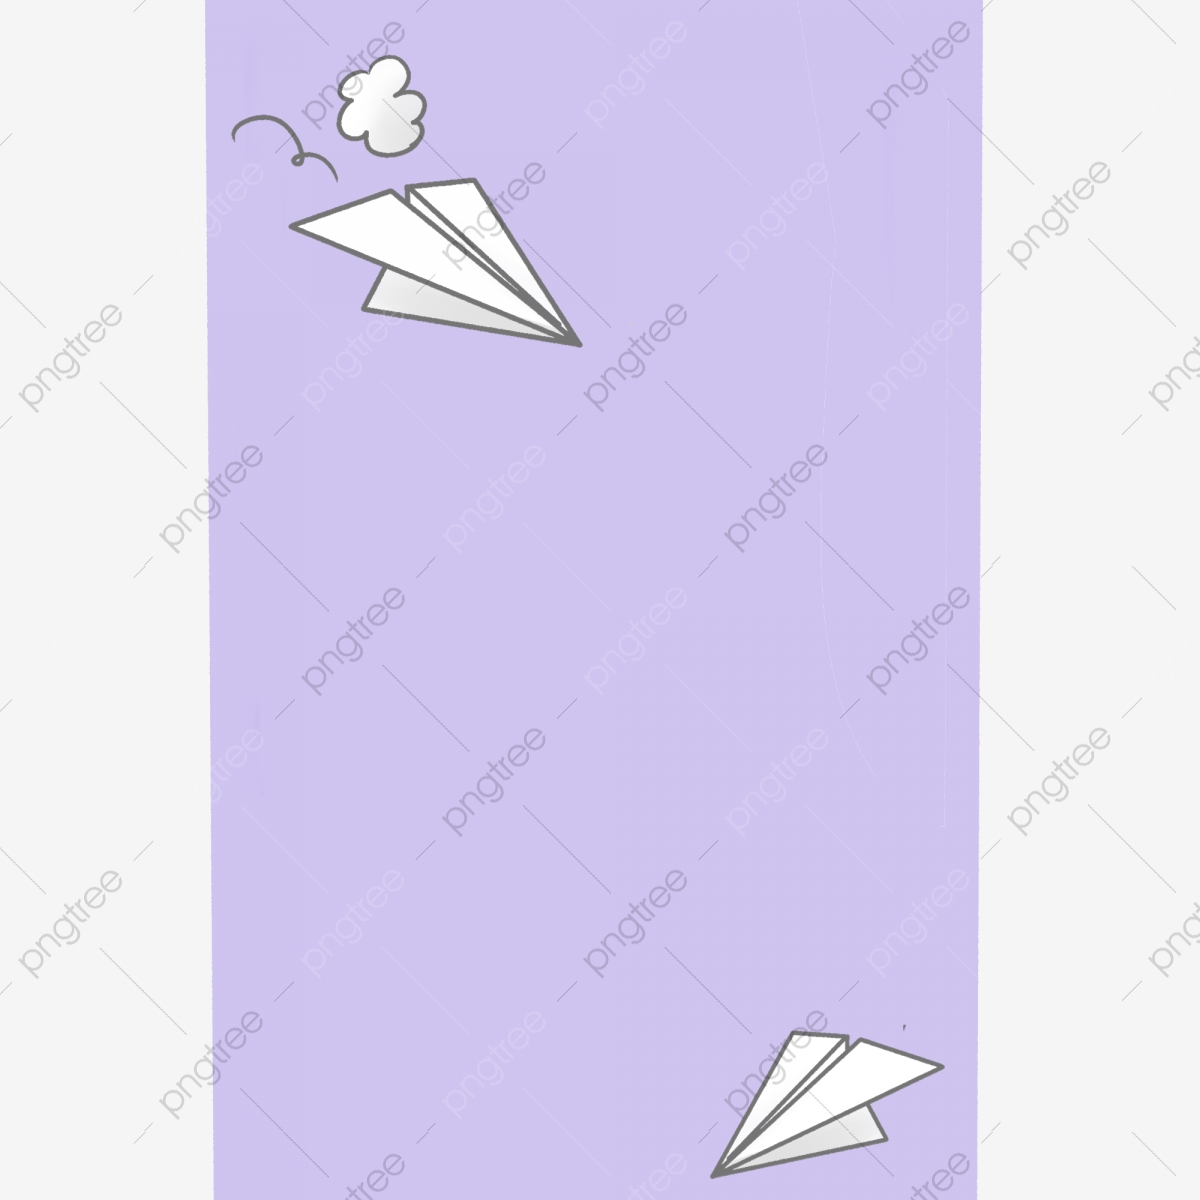 cute aesthetic cute airplane icon transparent background